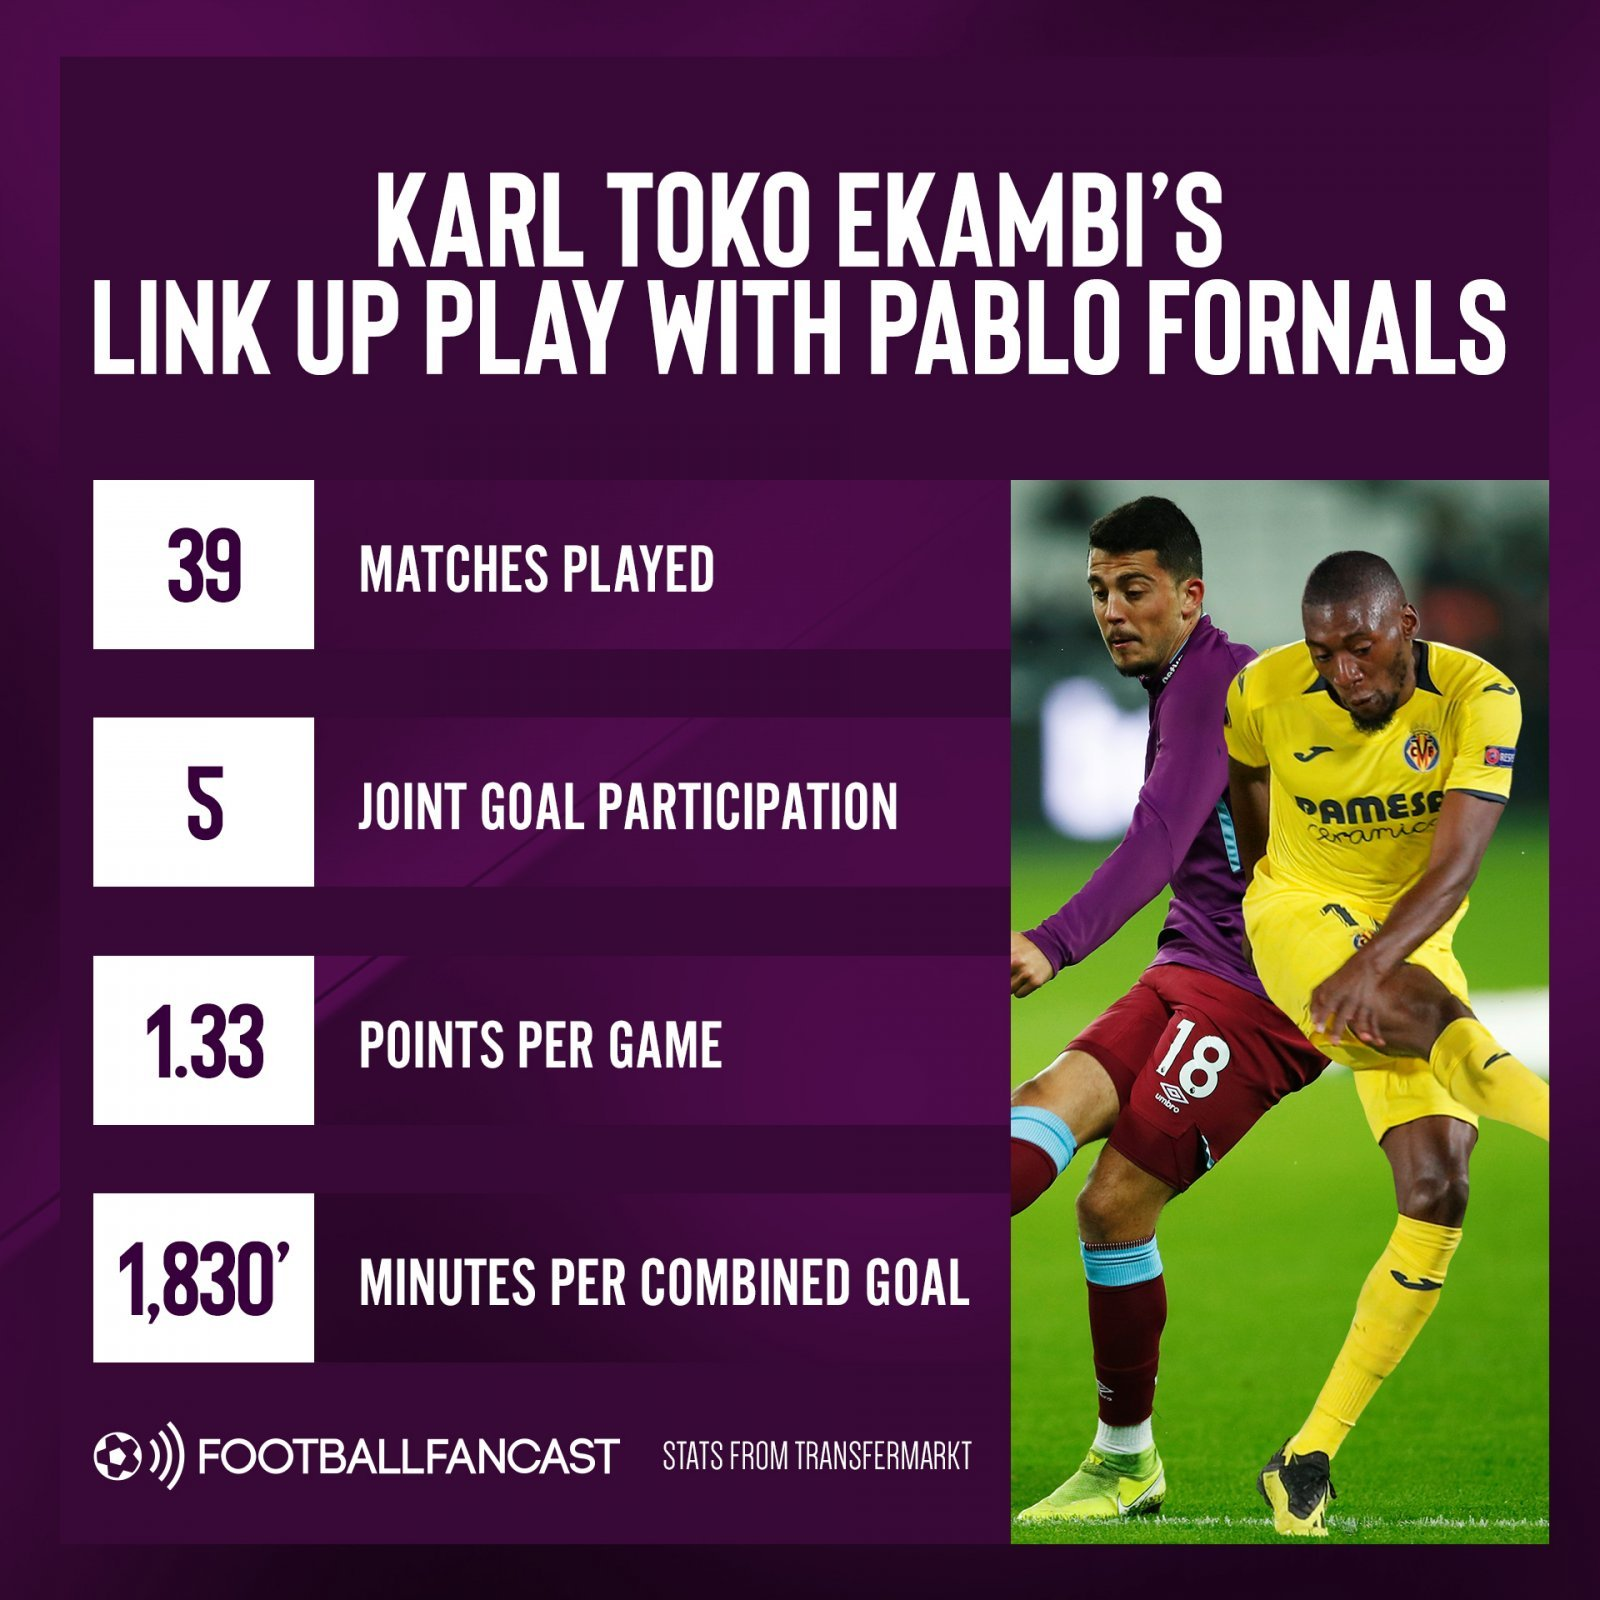 Karl Toko Ekambis link up play with Pablo Fornals - Fornals reunion: West Ham target has a proven connection with Spanish maestro - opinion